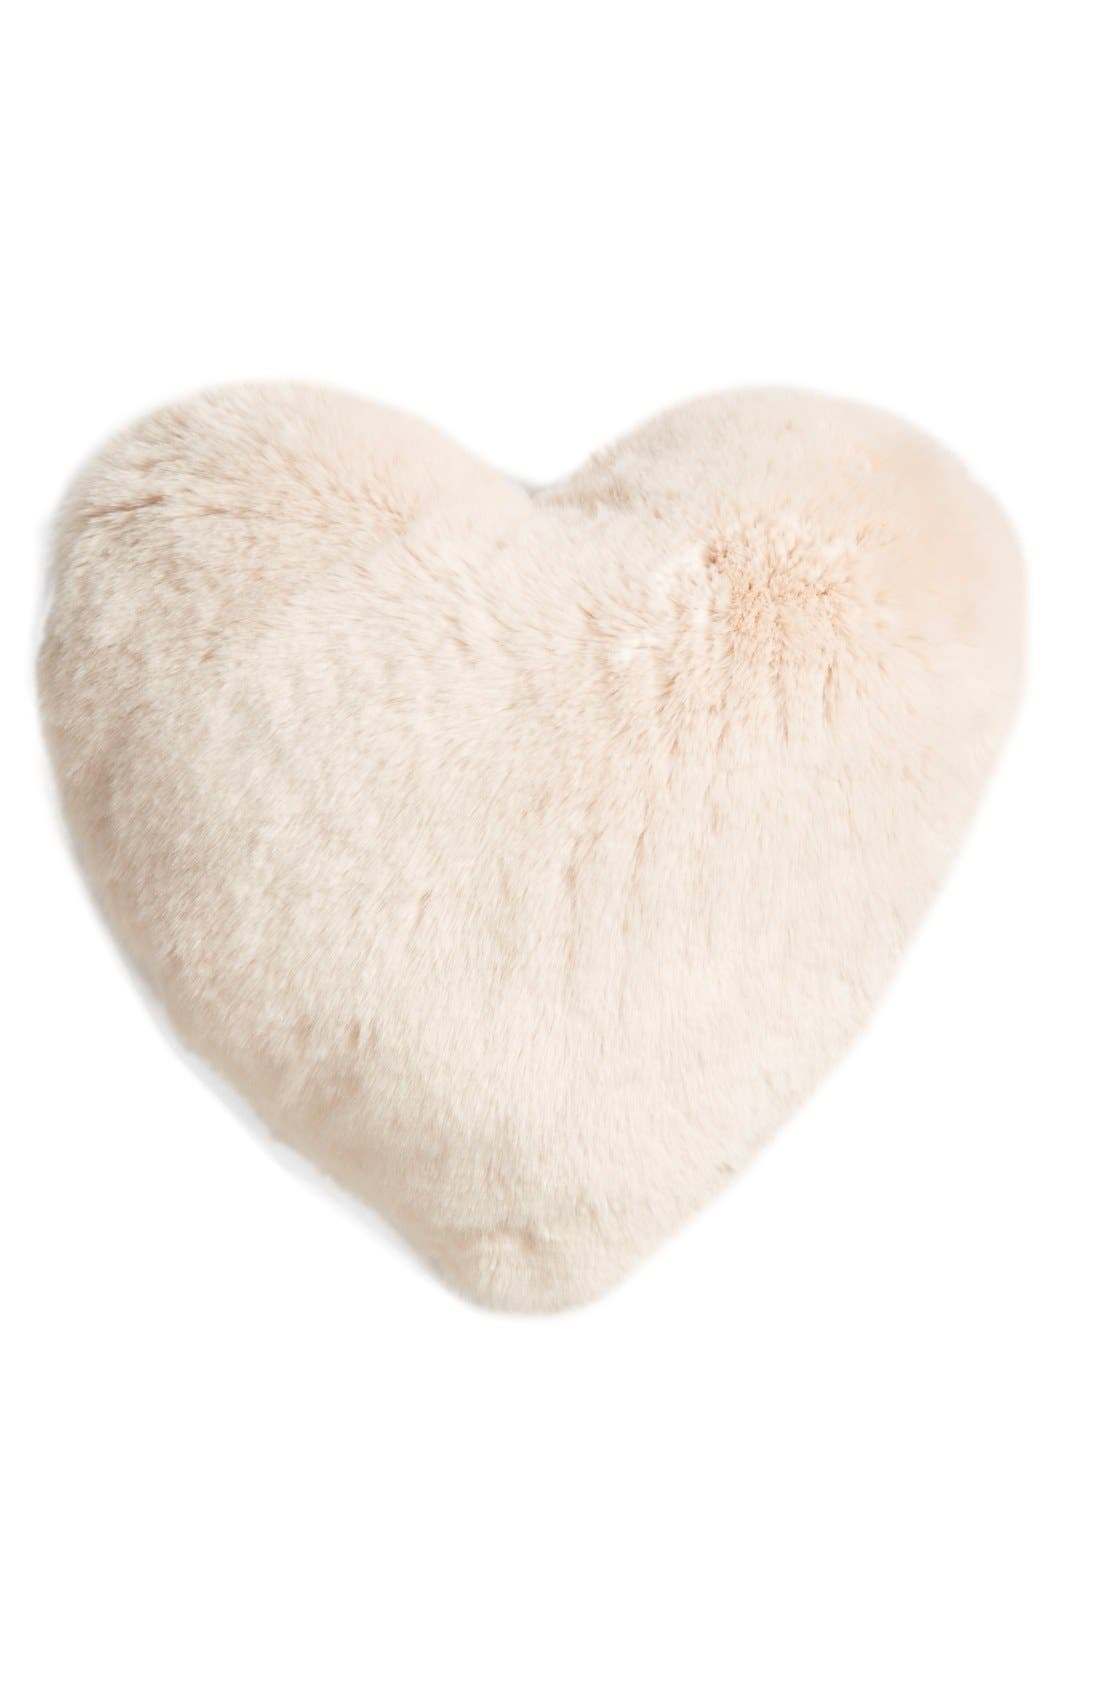 NORDSTROM AT HOME 'Cuddle Up' Heart Accent Pillow, Main, color, 650